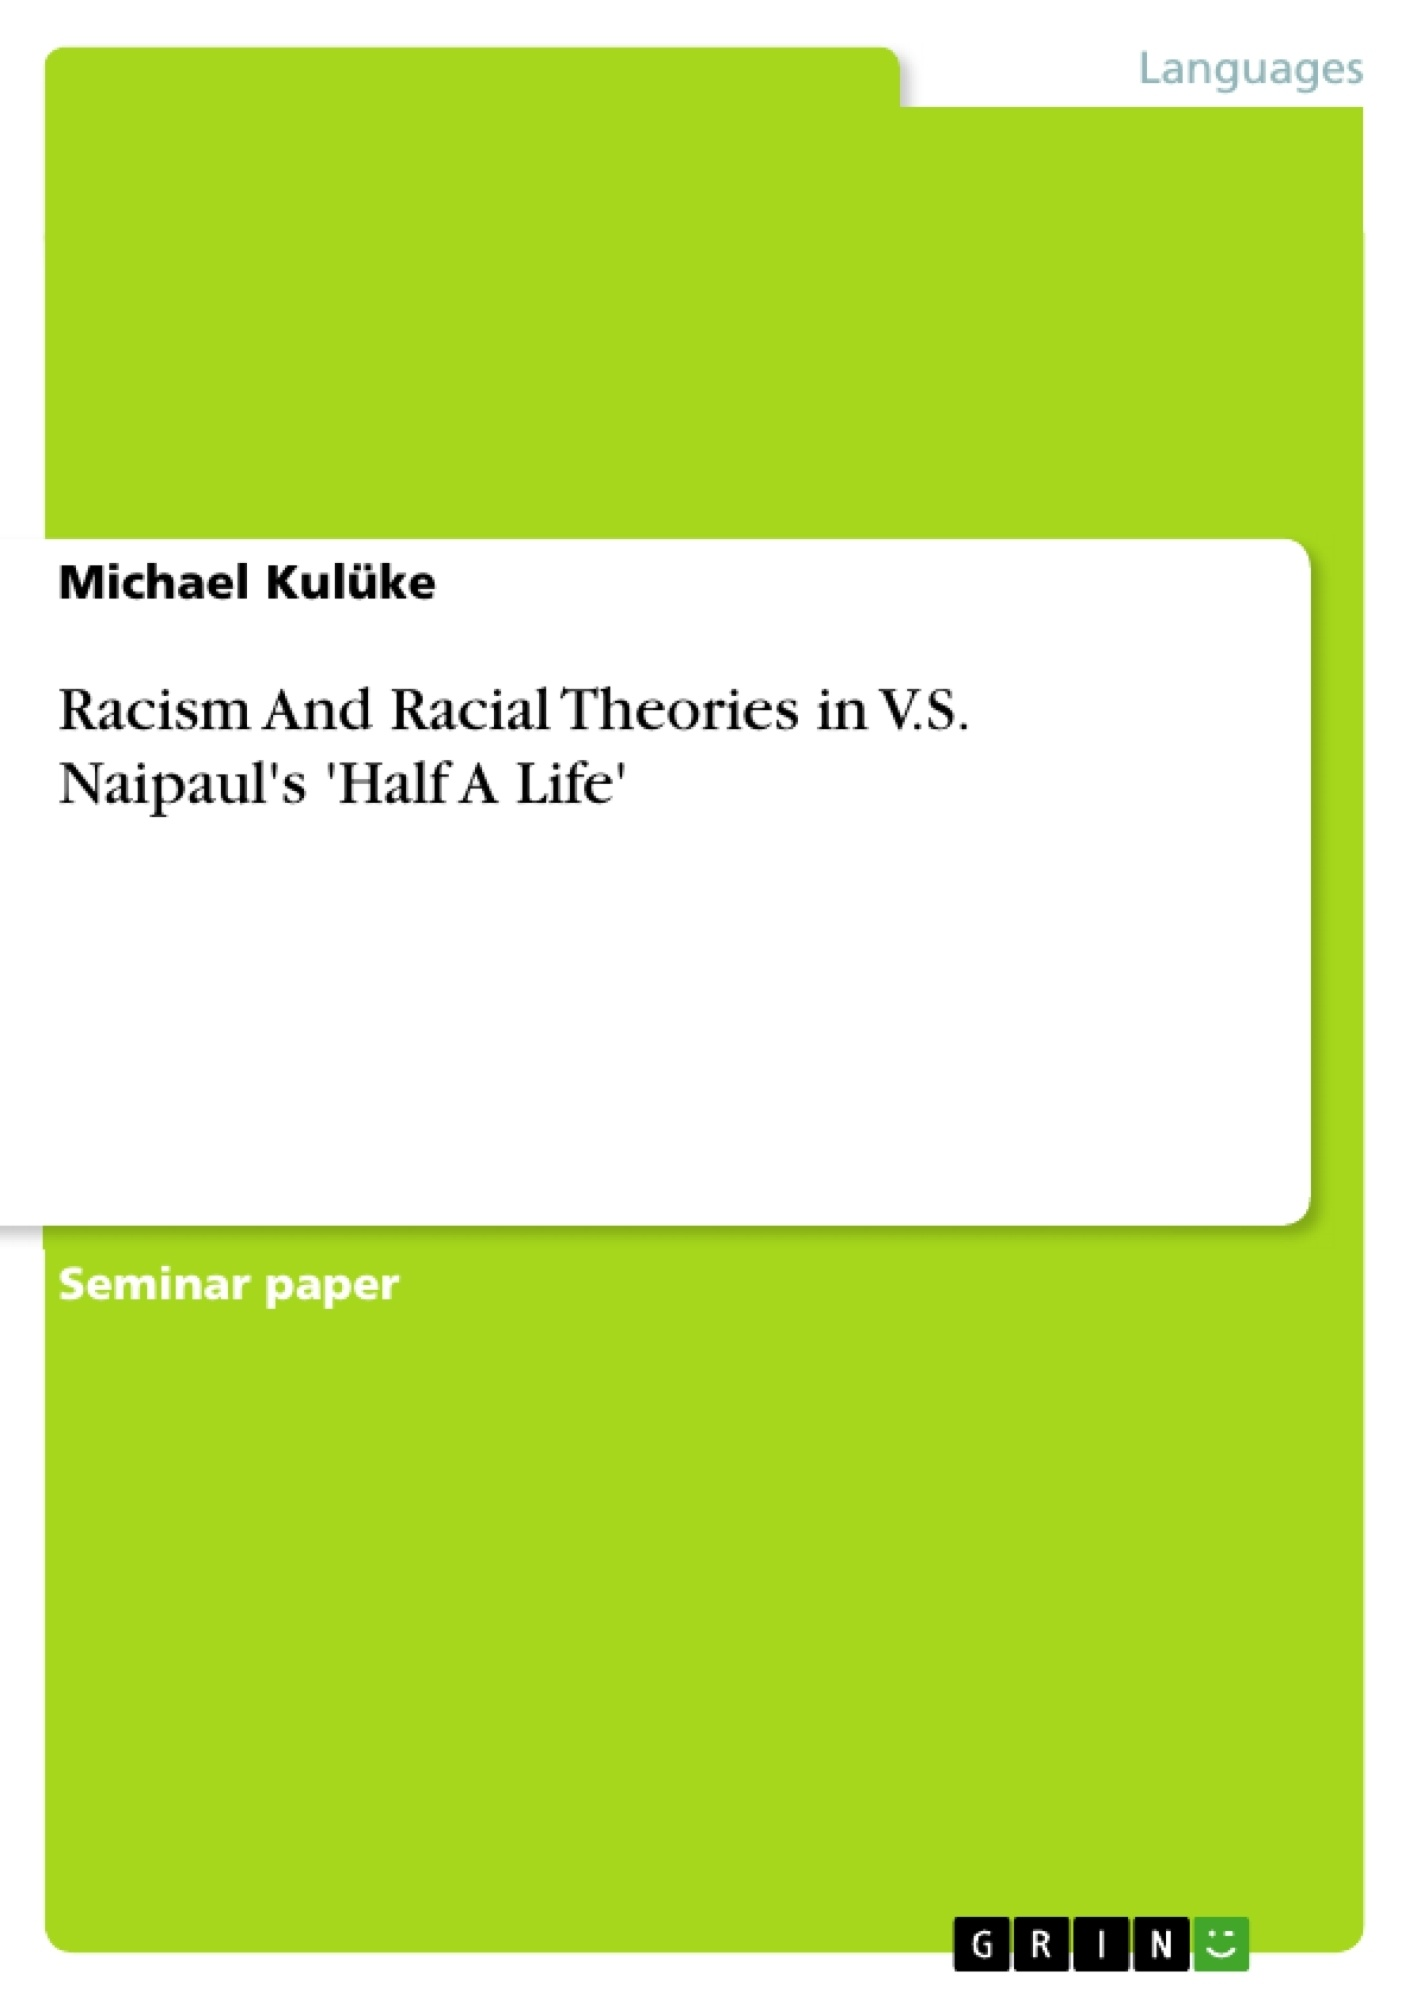 racism and racial theories in v s naipaul s half a life racism and racial theories in v s naipaul s half a life publish your master s thesis bachelor s thesis essay or term paper